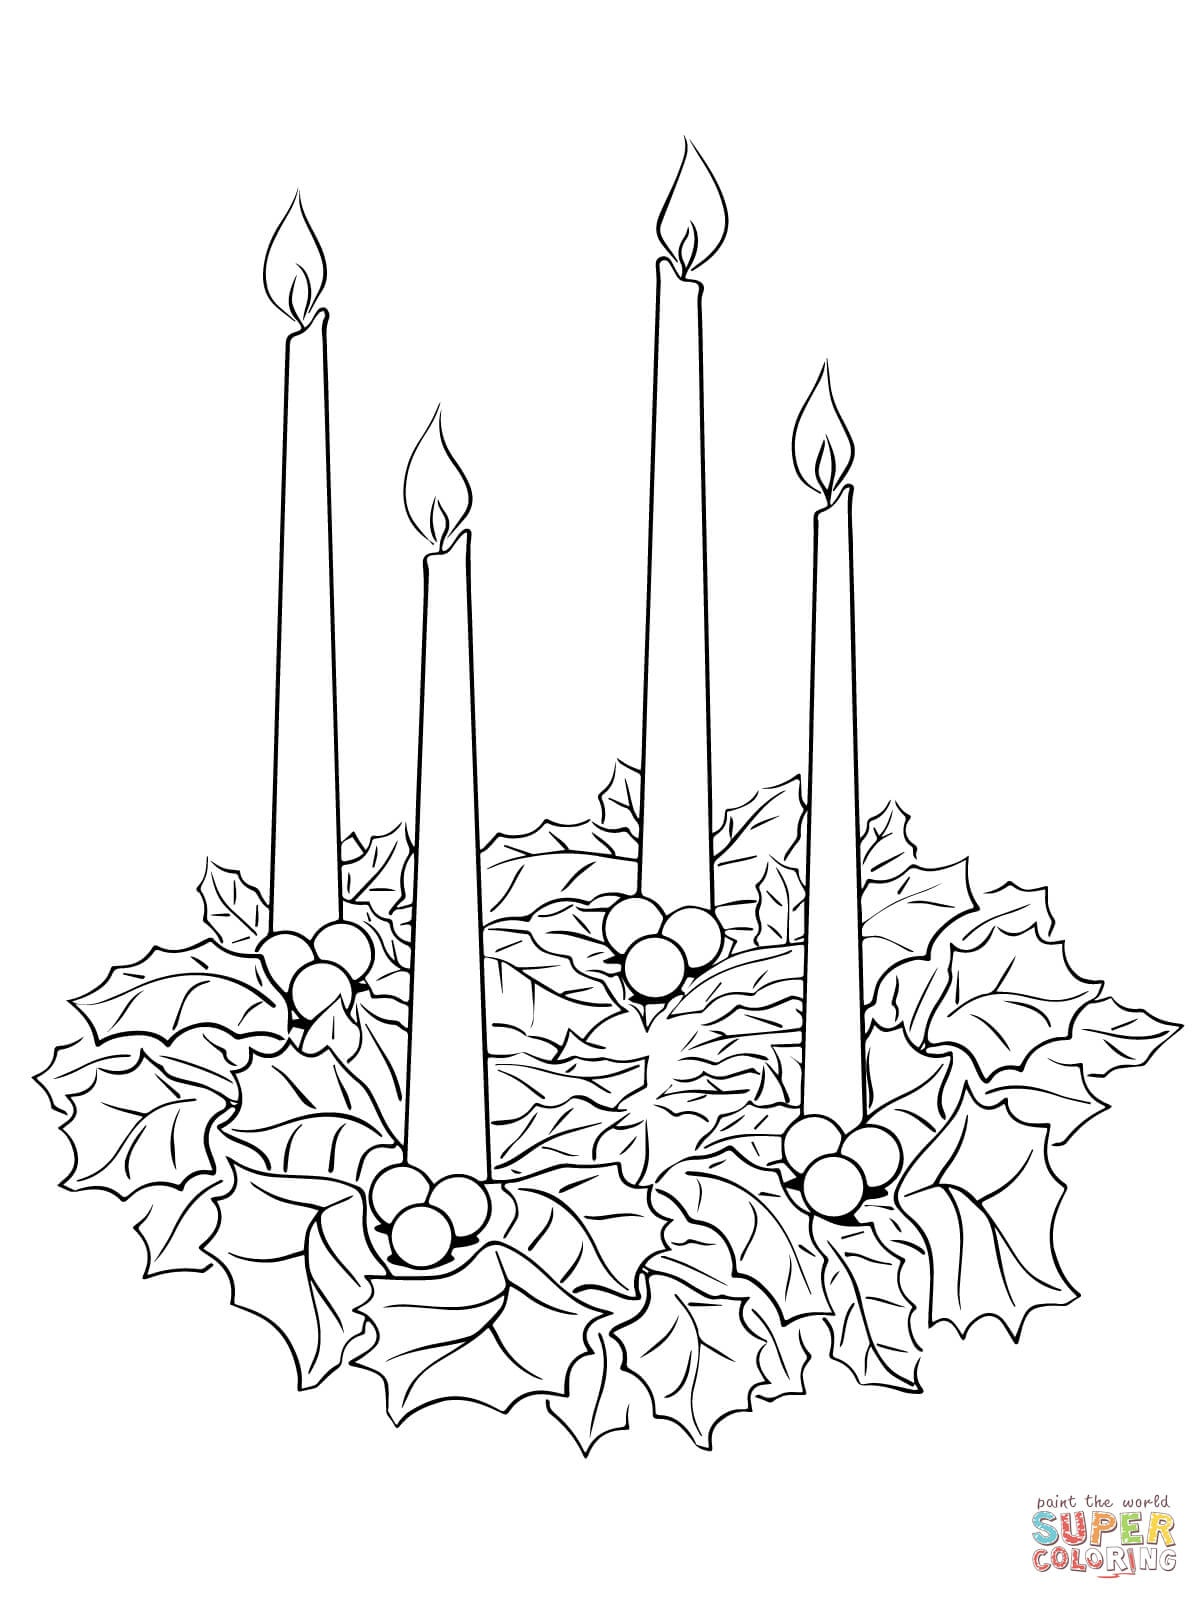 Advent Wreath Coloring Page | Free Printable Coloring Pages - Free Printable Advent Wreath